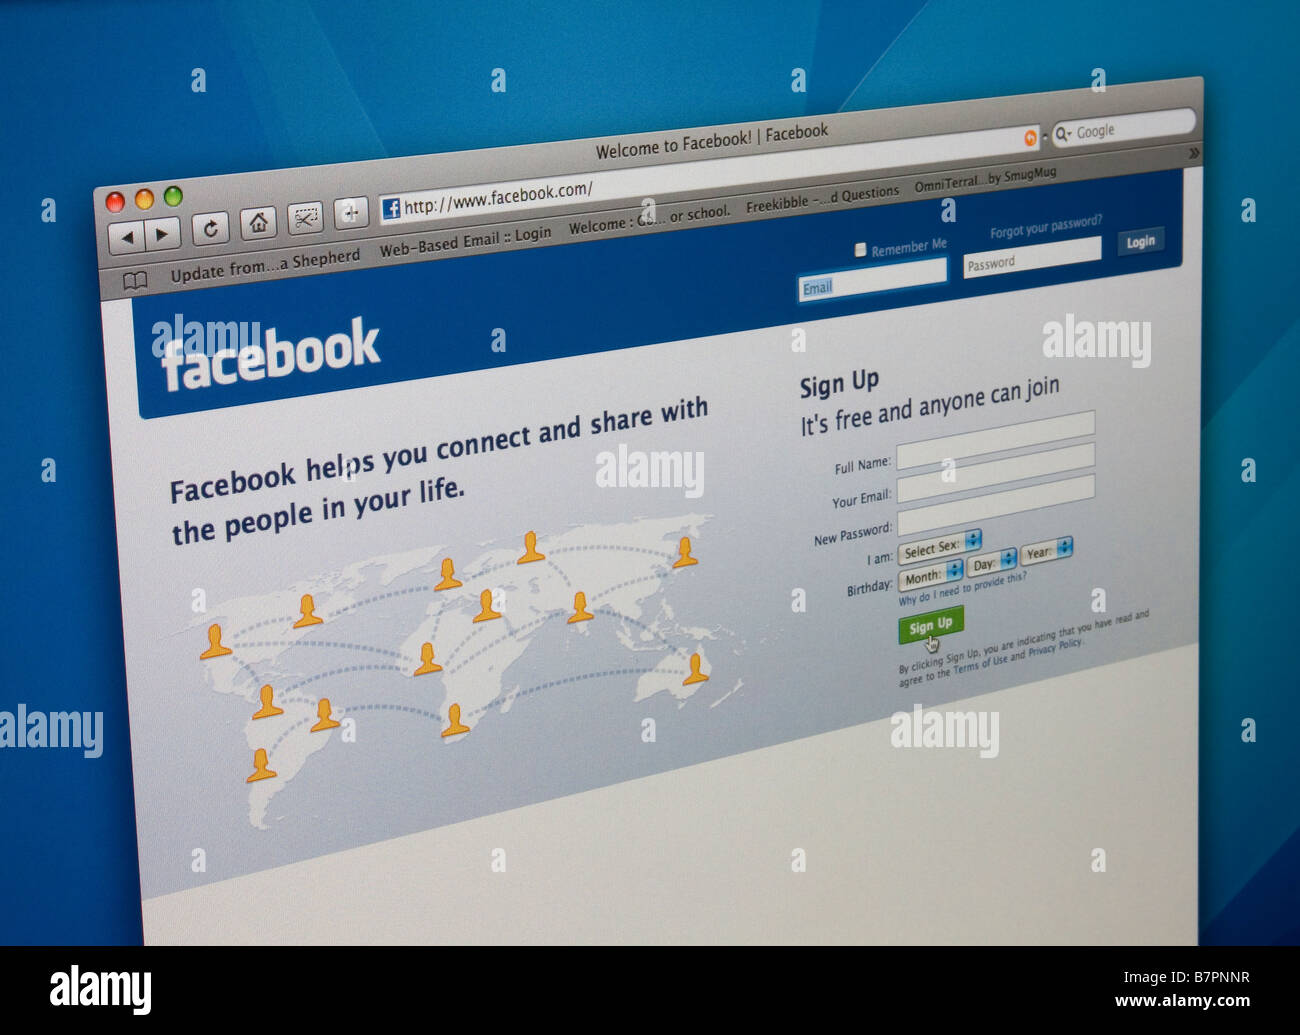 Facebook page photograph of a computer monitor with the Facebook.com website homepage displayed. - Stock Image